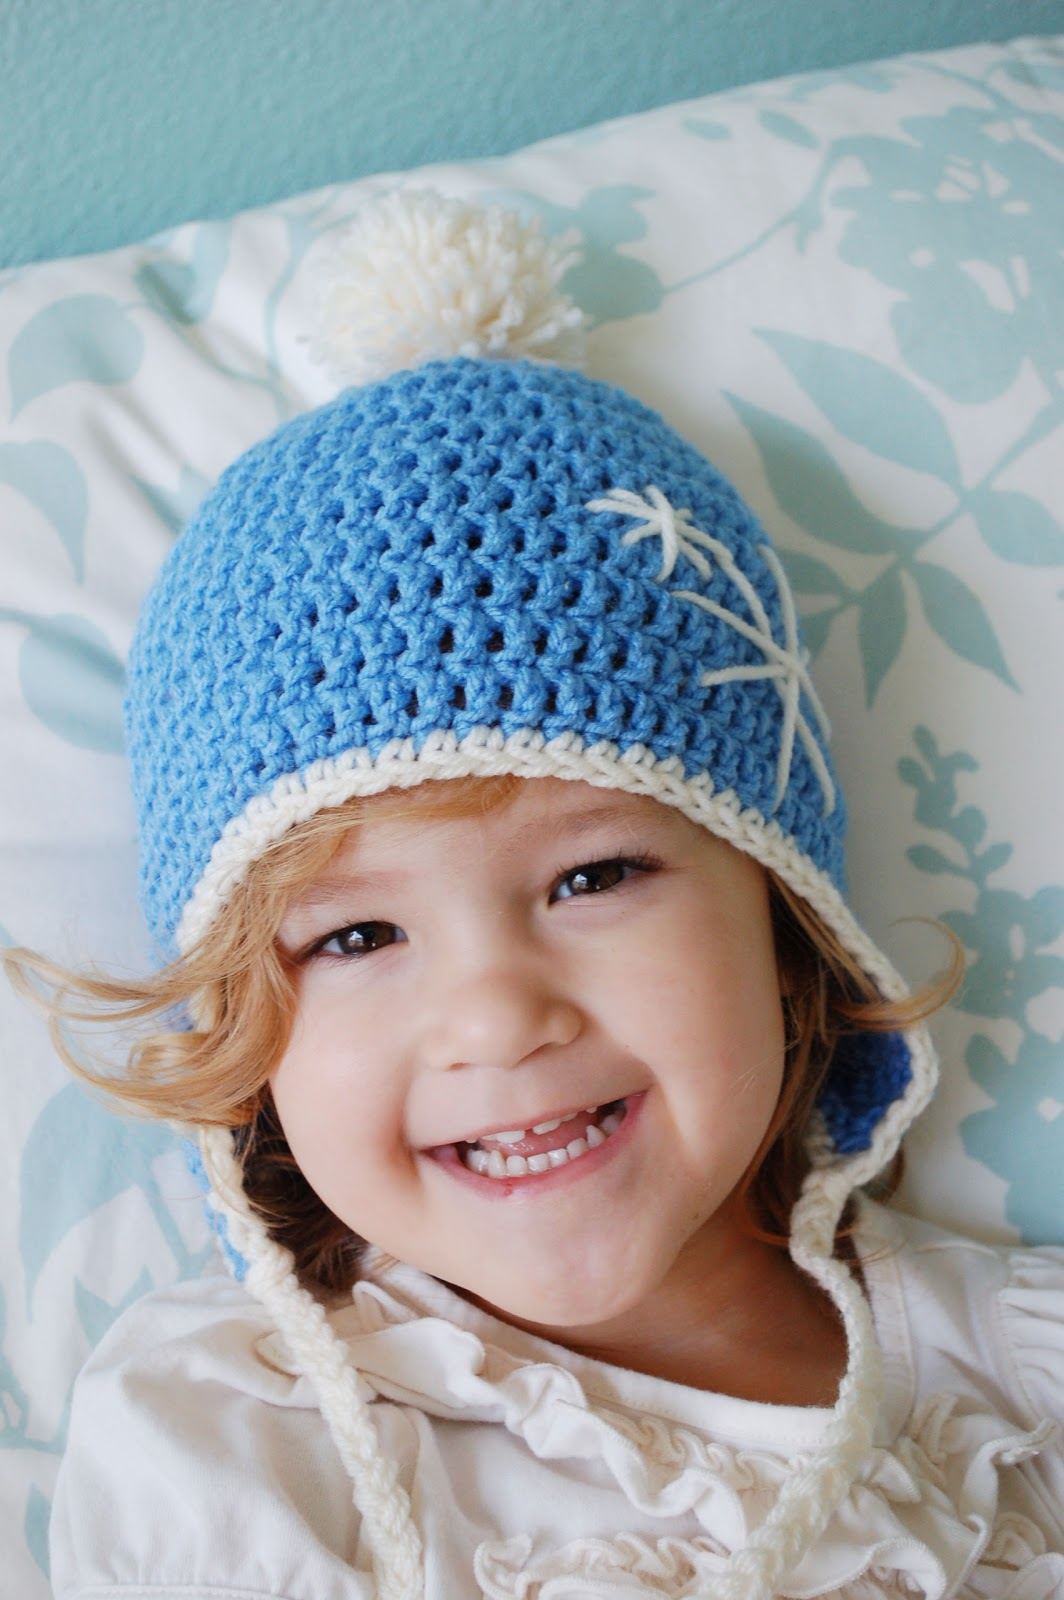 Alli crafts free pattern earflap hat toddler free pattern earflap hat toddler bankloansurffo Choice Image